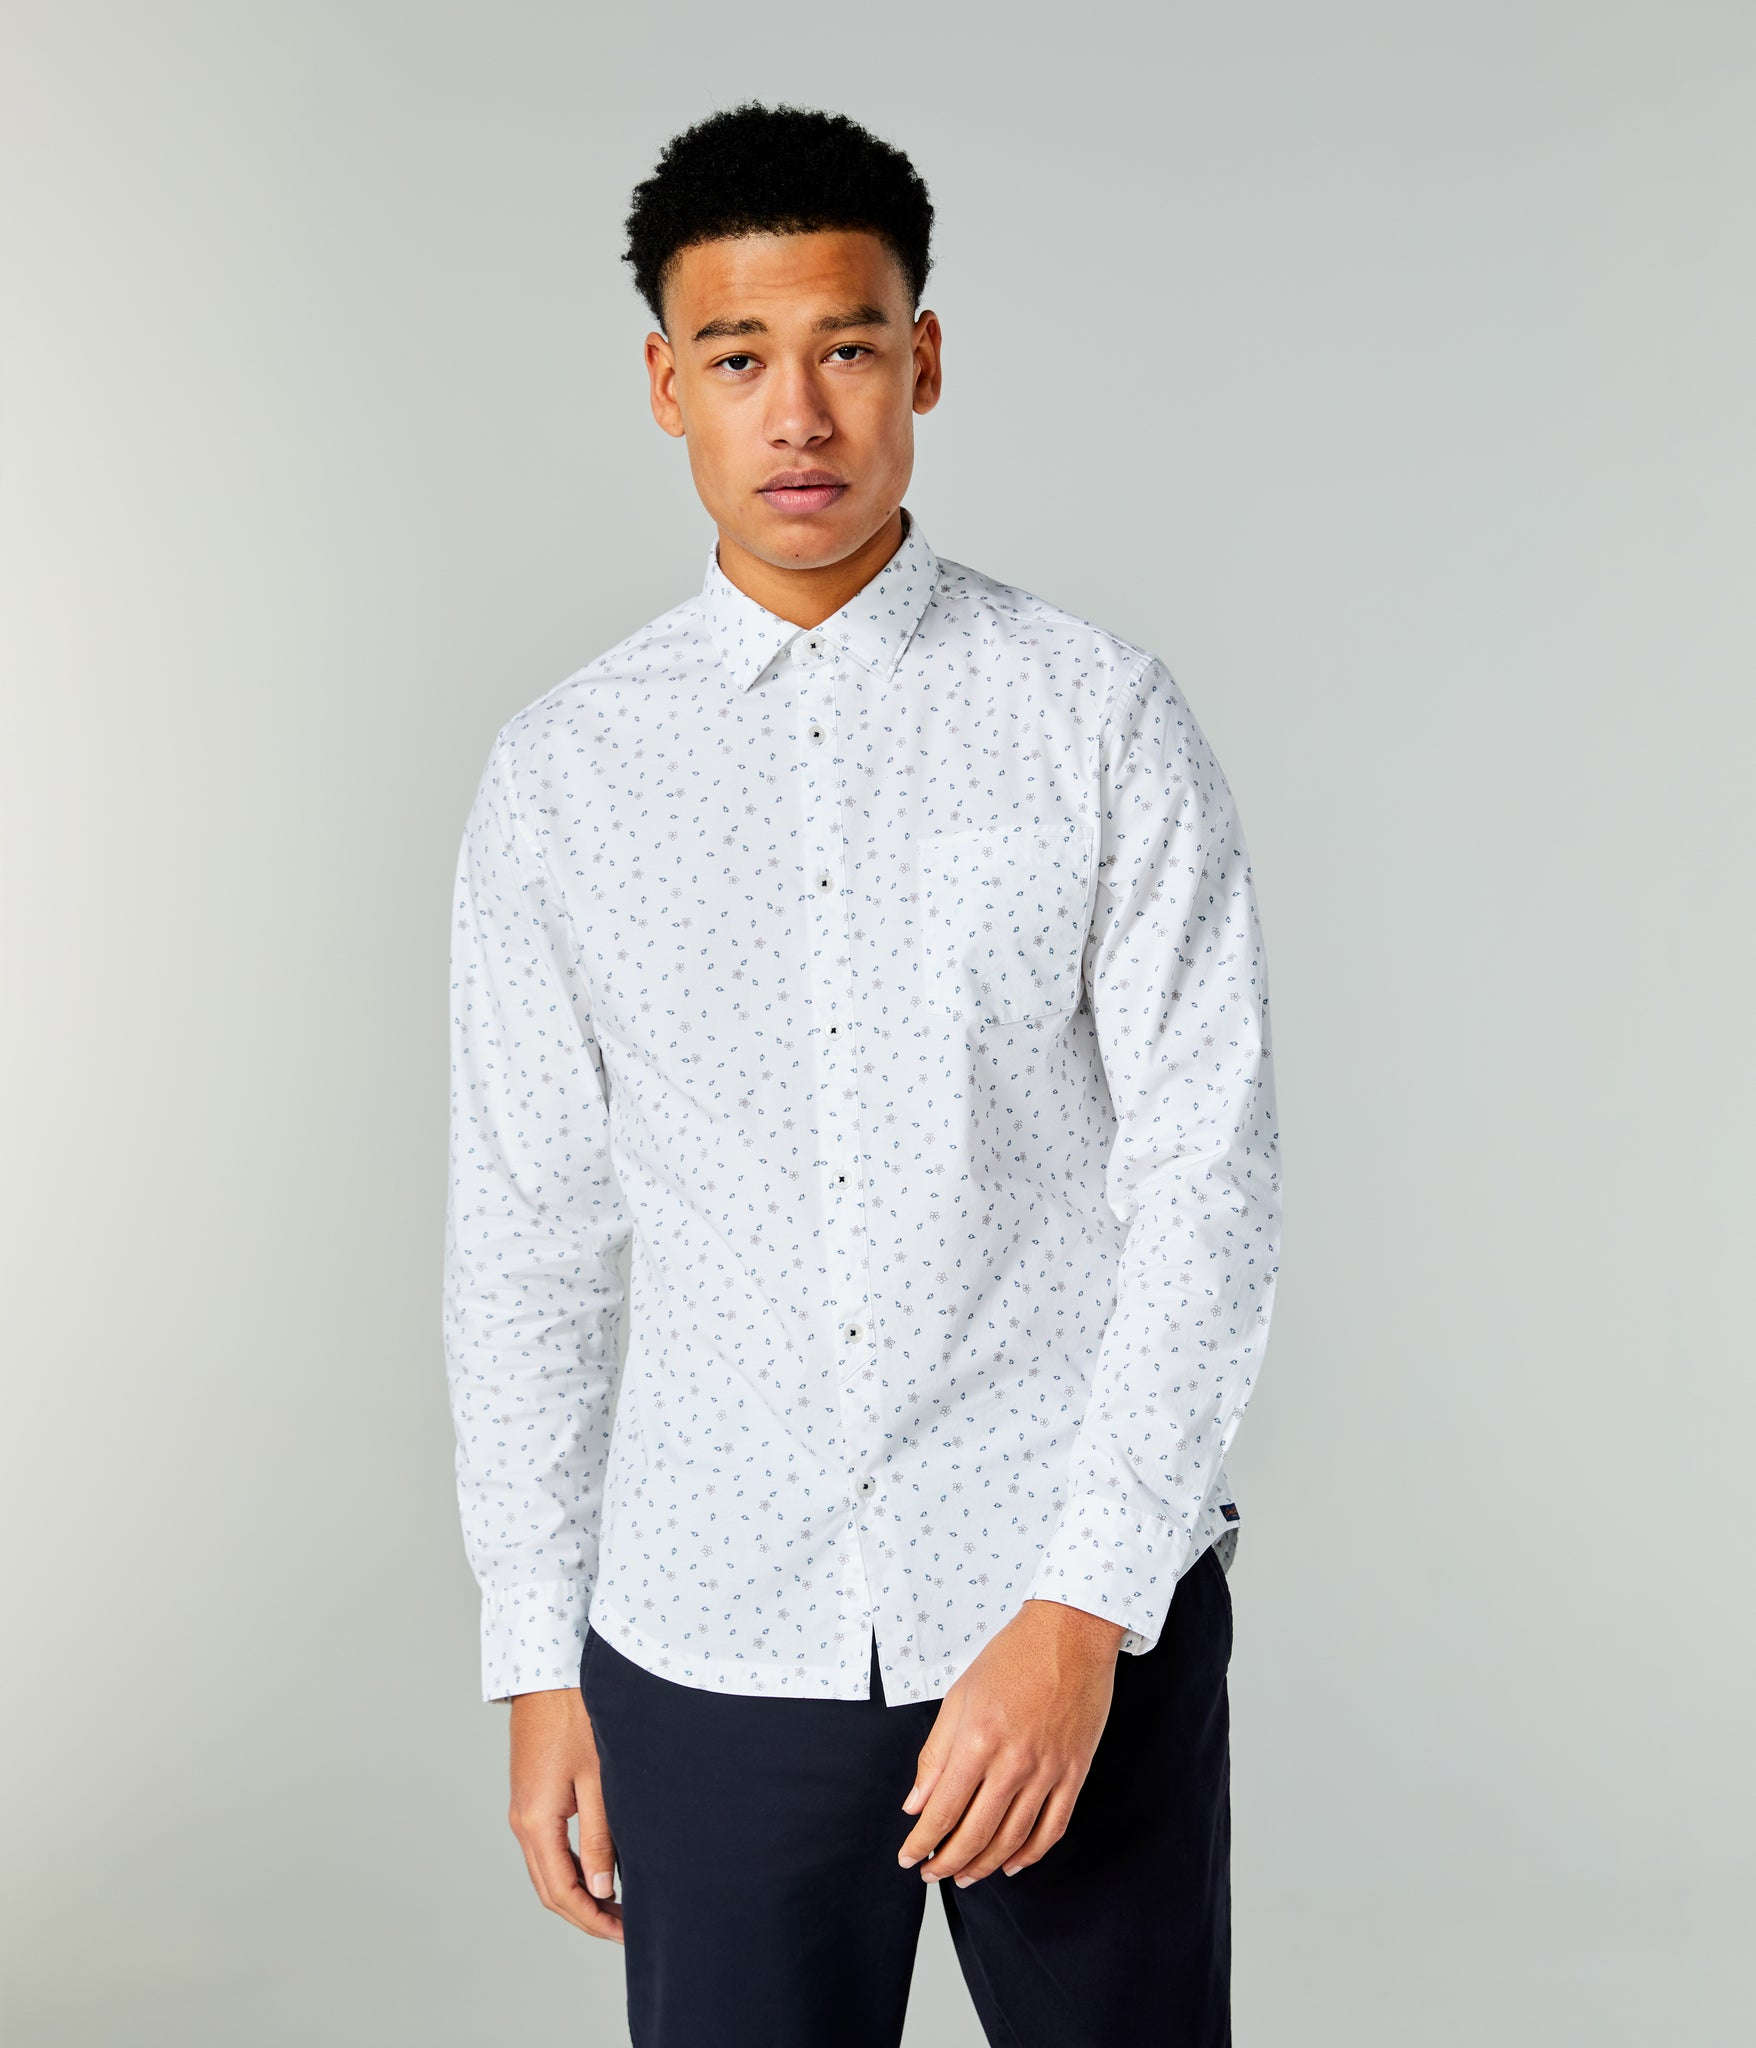 On-Point Print Shirt - White Spring Diamonds